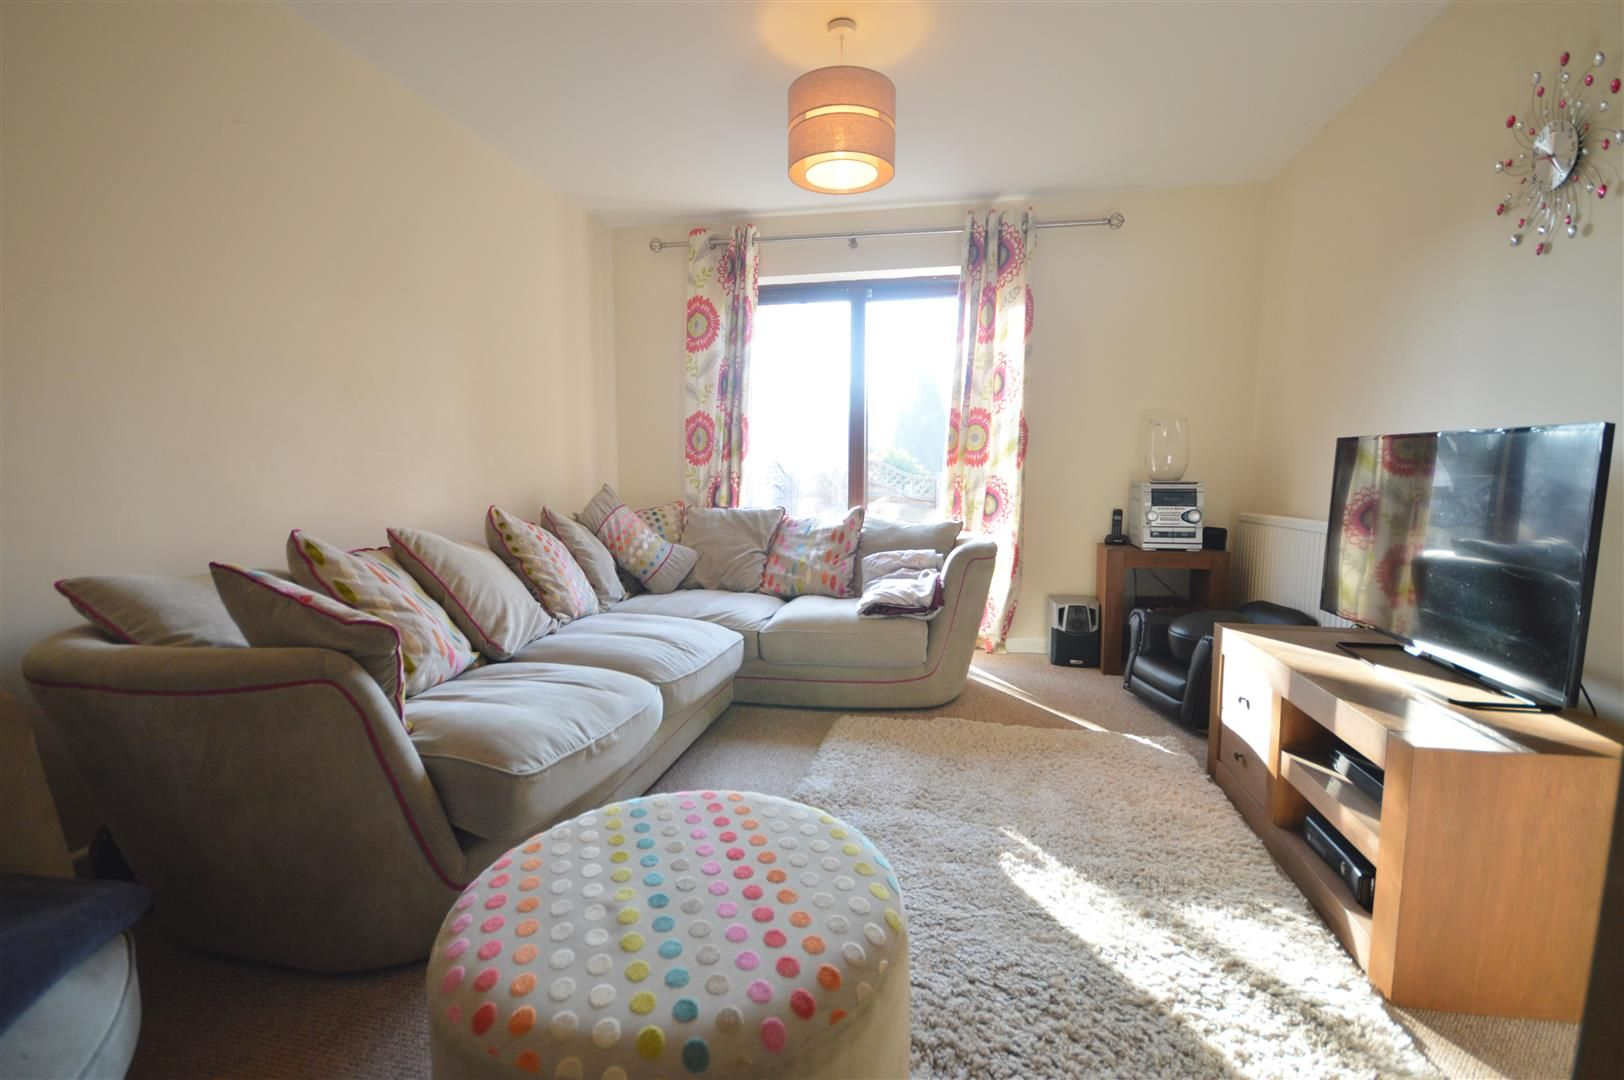 3 bed end-of-terrace for sale in Leominster  - Property Image 2